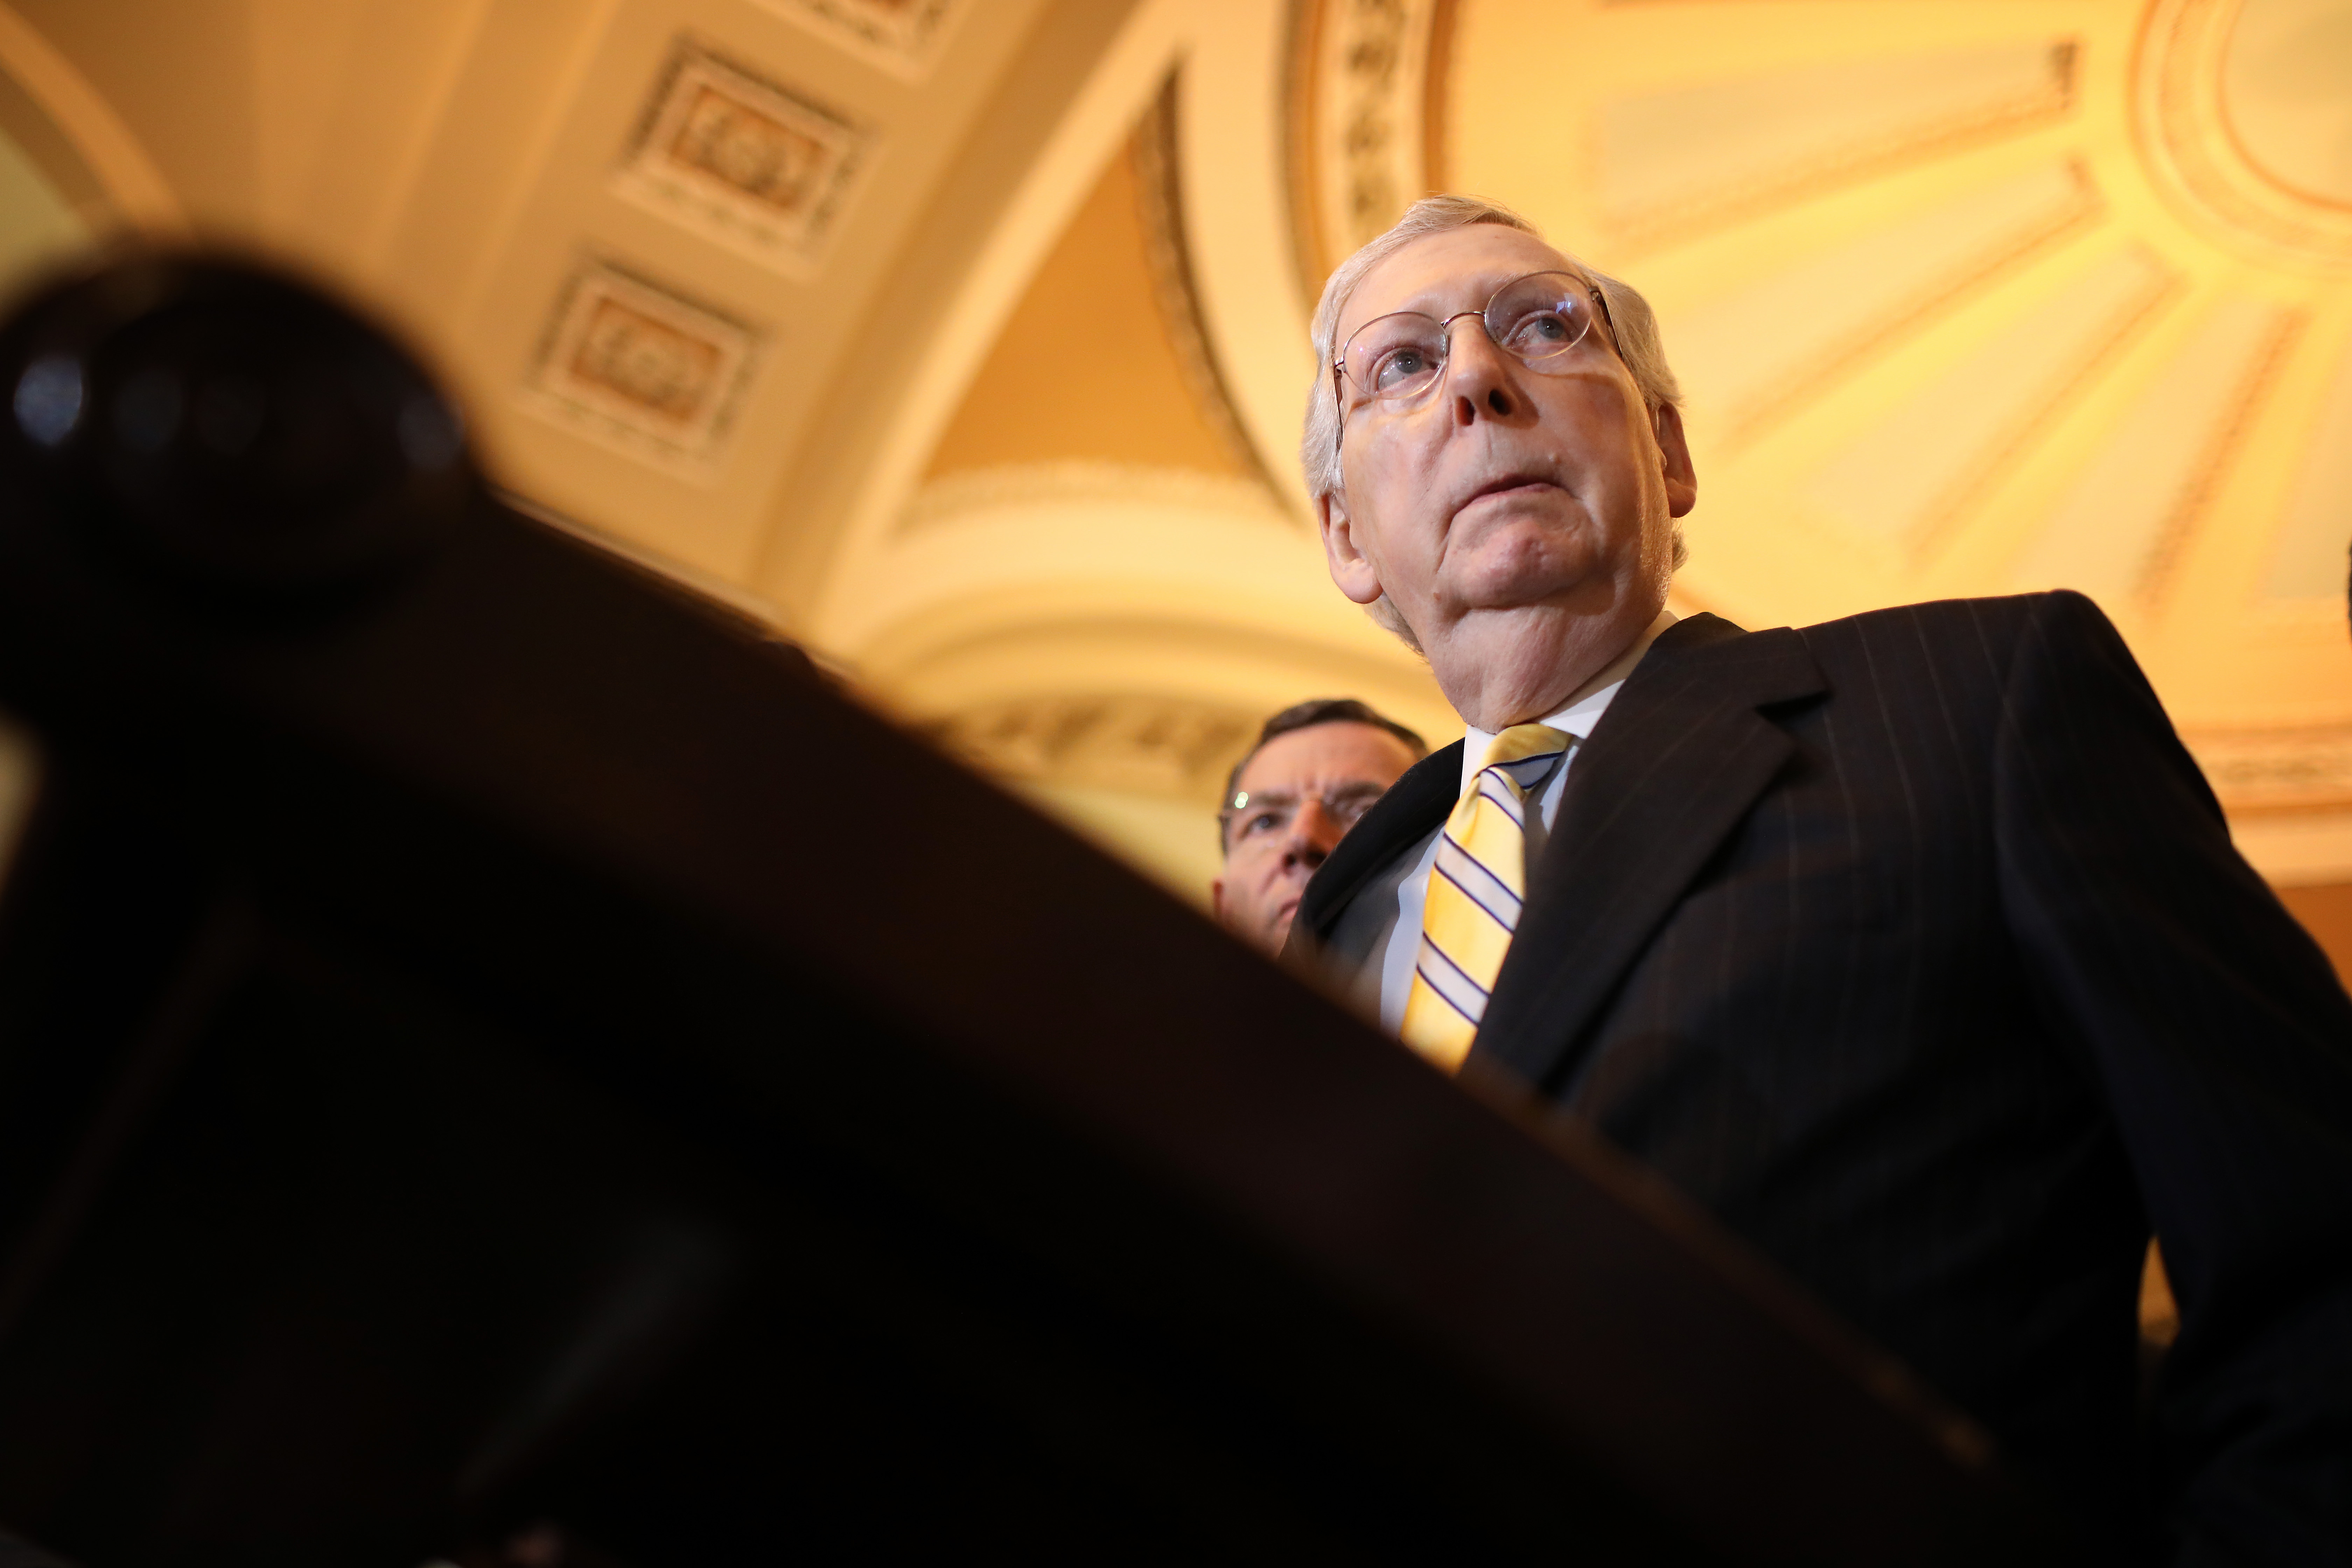 Election security bills in the Senate are hitting one big roadblock: Mitch McConnell